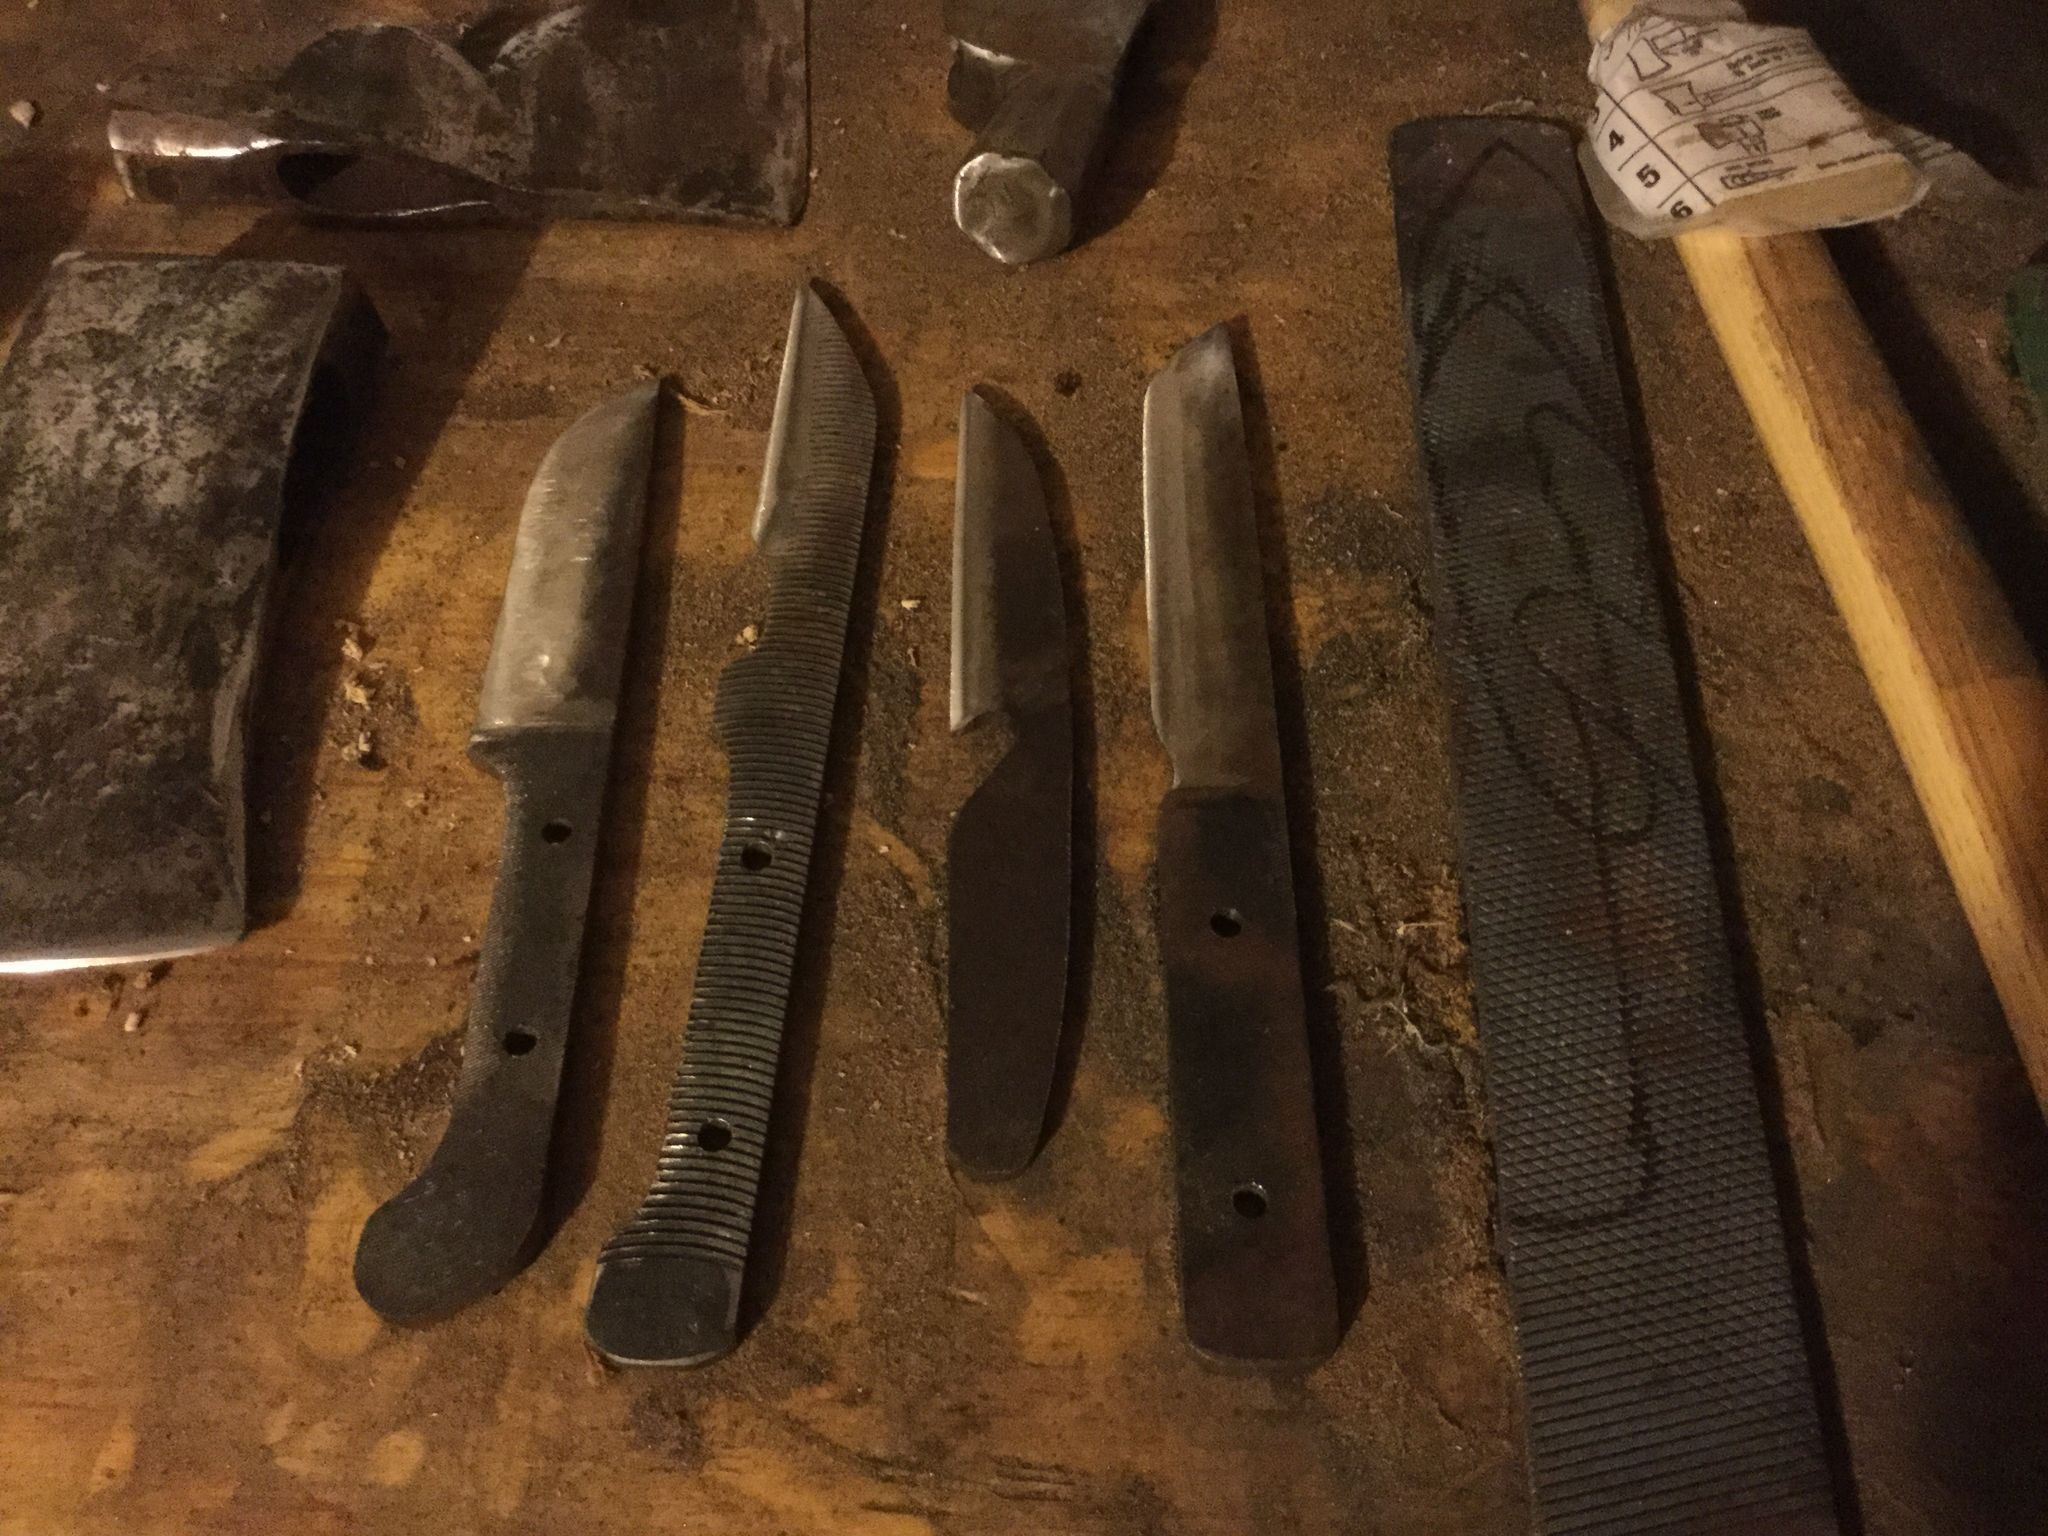 File Knife Blanks Made From Old Files Ready For Tempering Knife Knife Making Tools